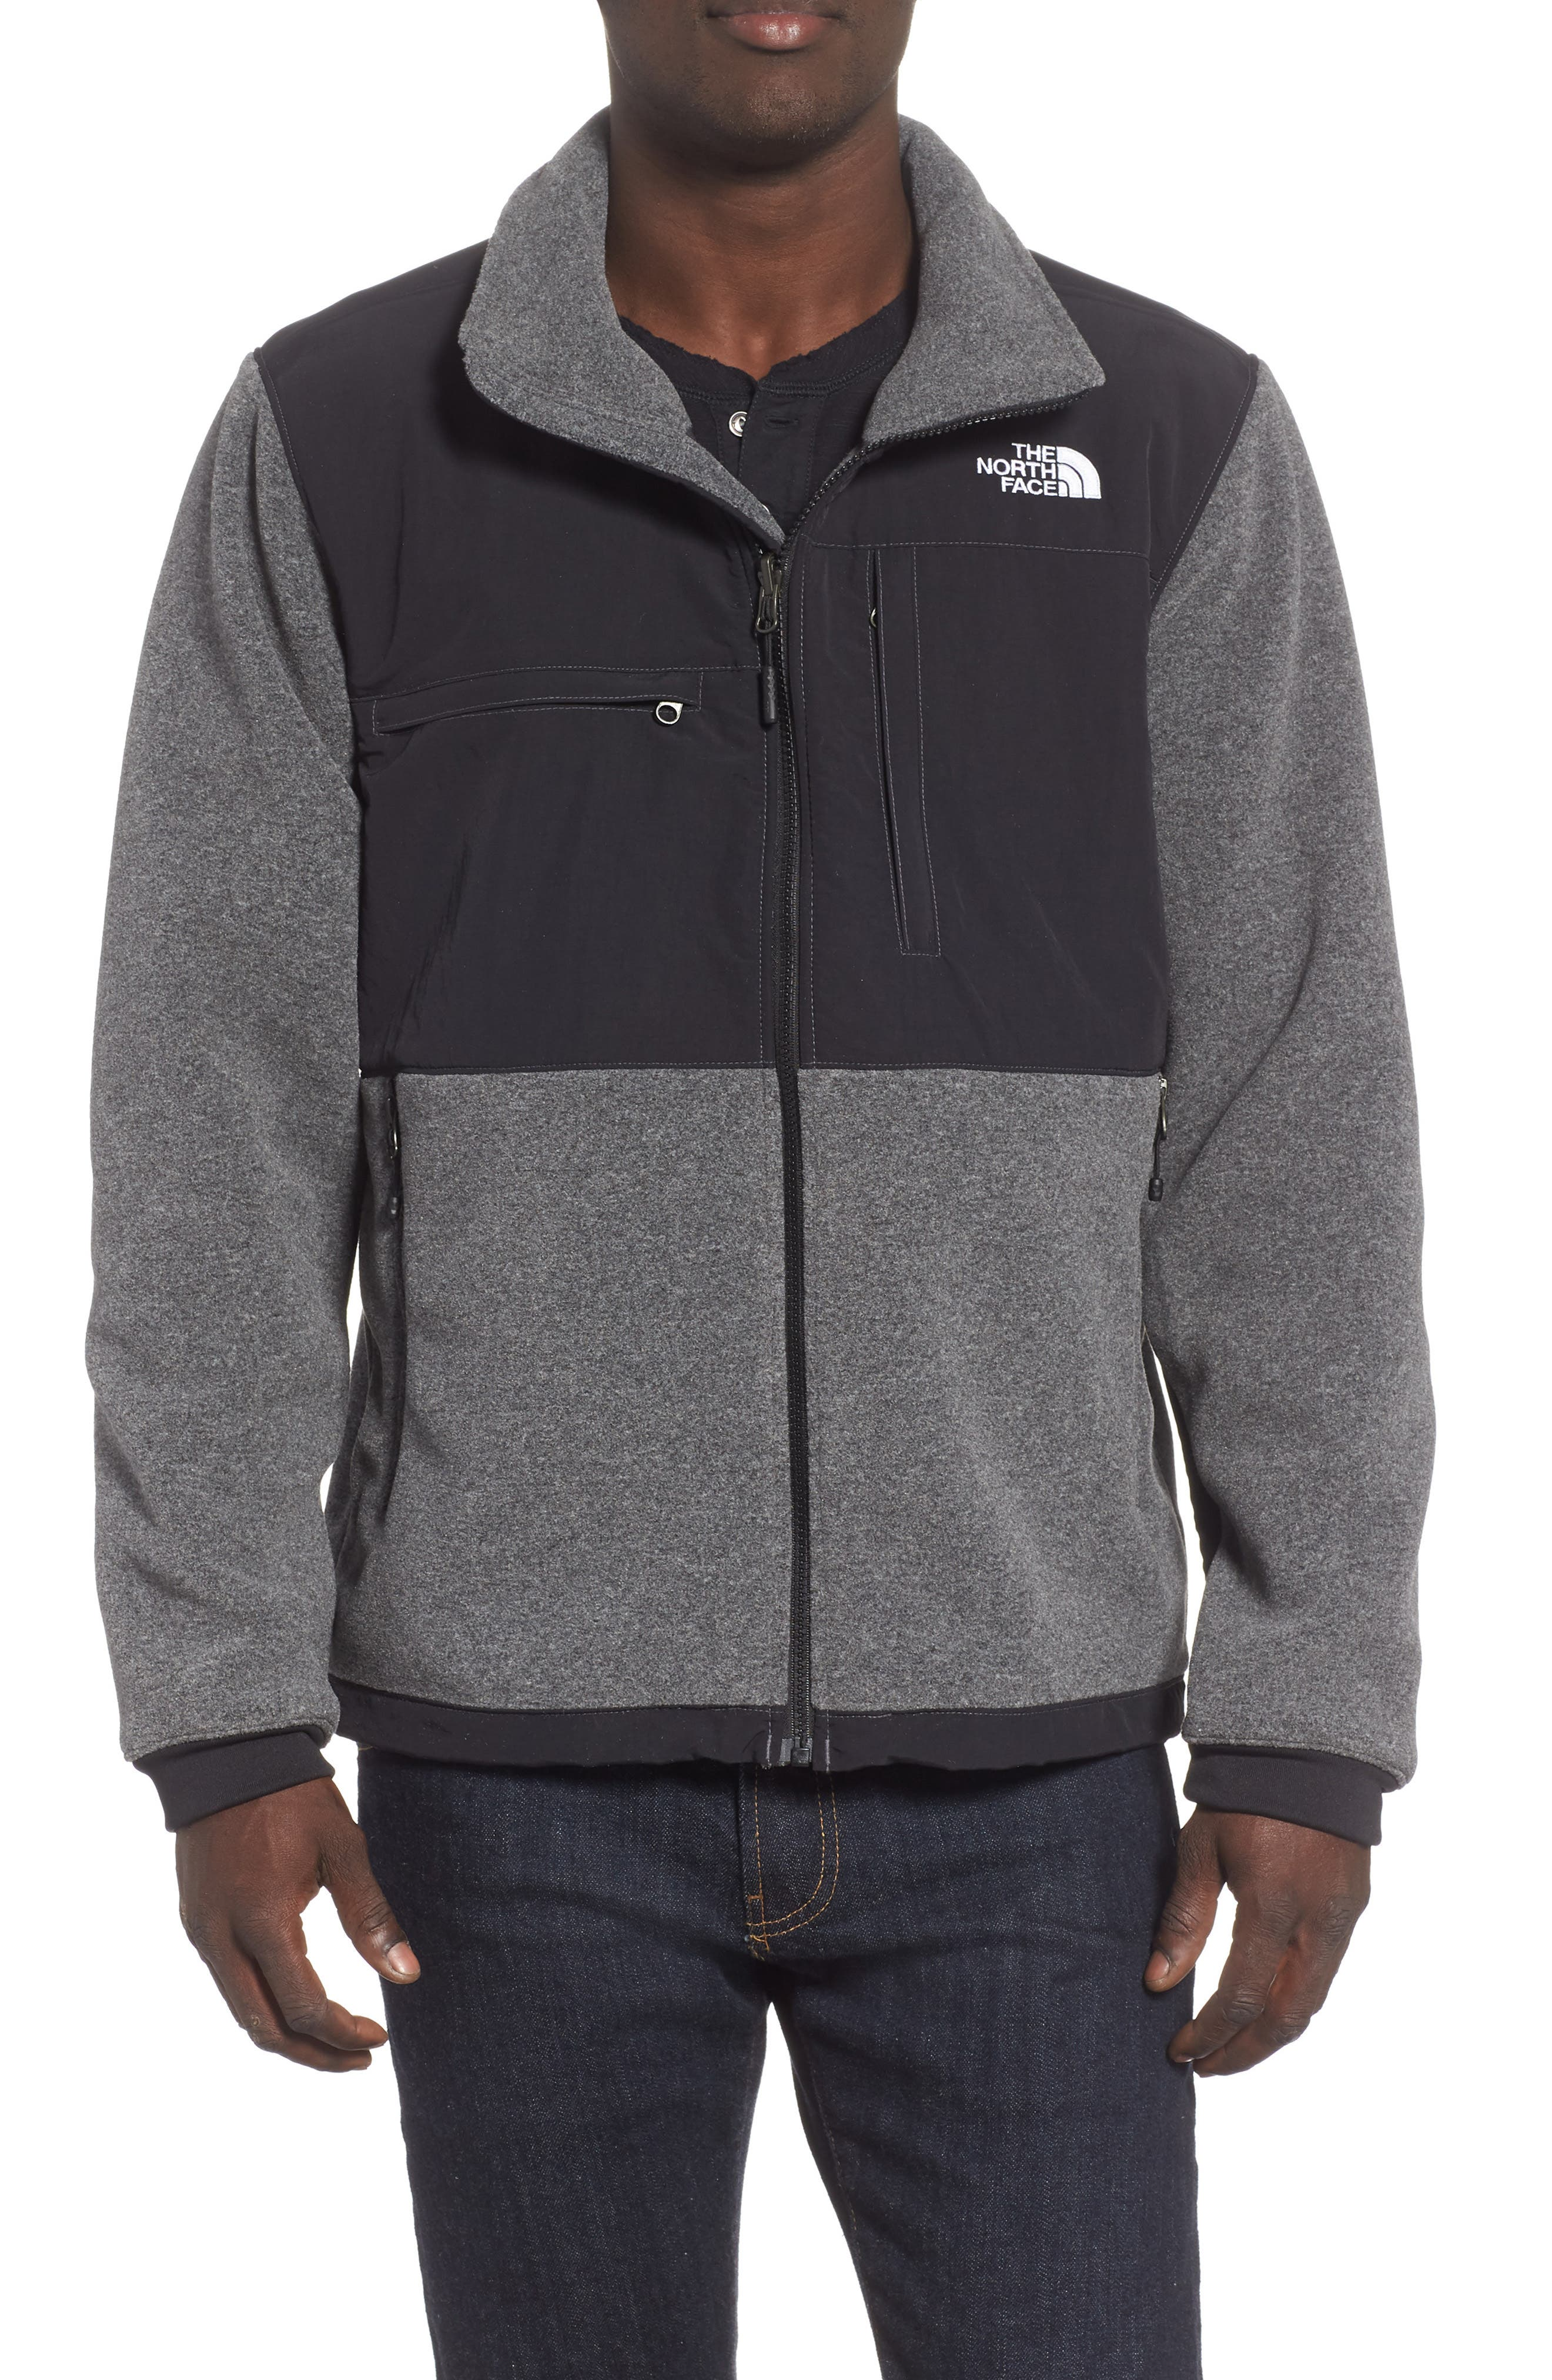 THE NORTH FACE Denali 2 Jacket, Main, color, RECYCLED CHARCOAL GREY HEATHER